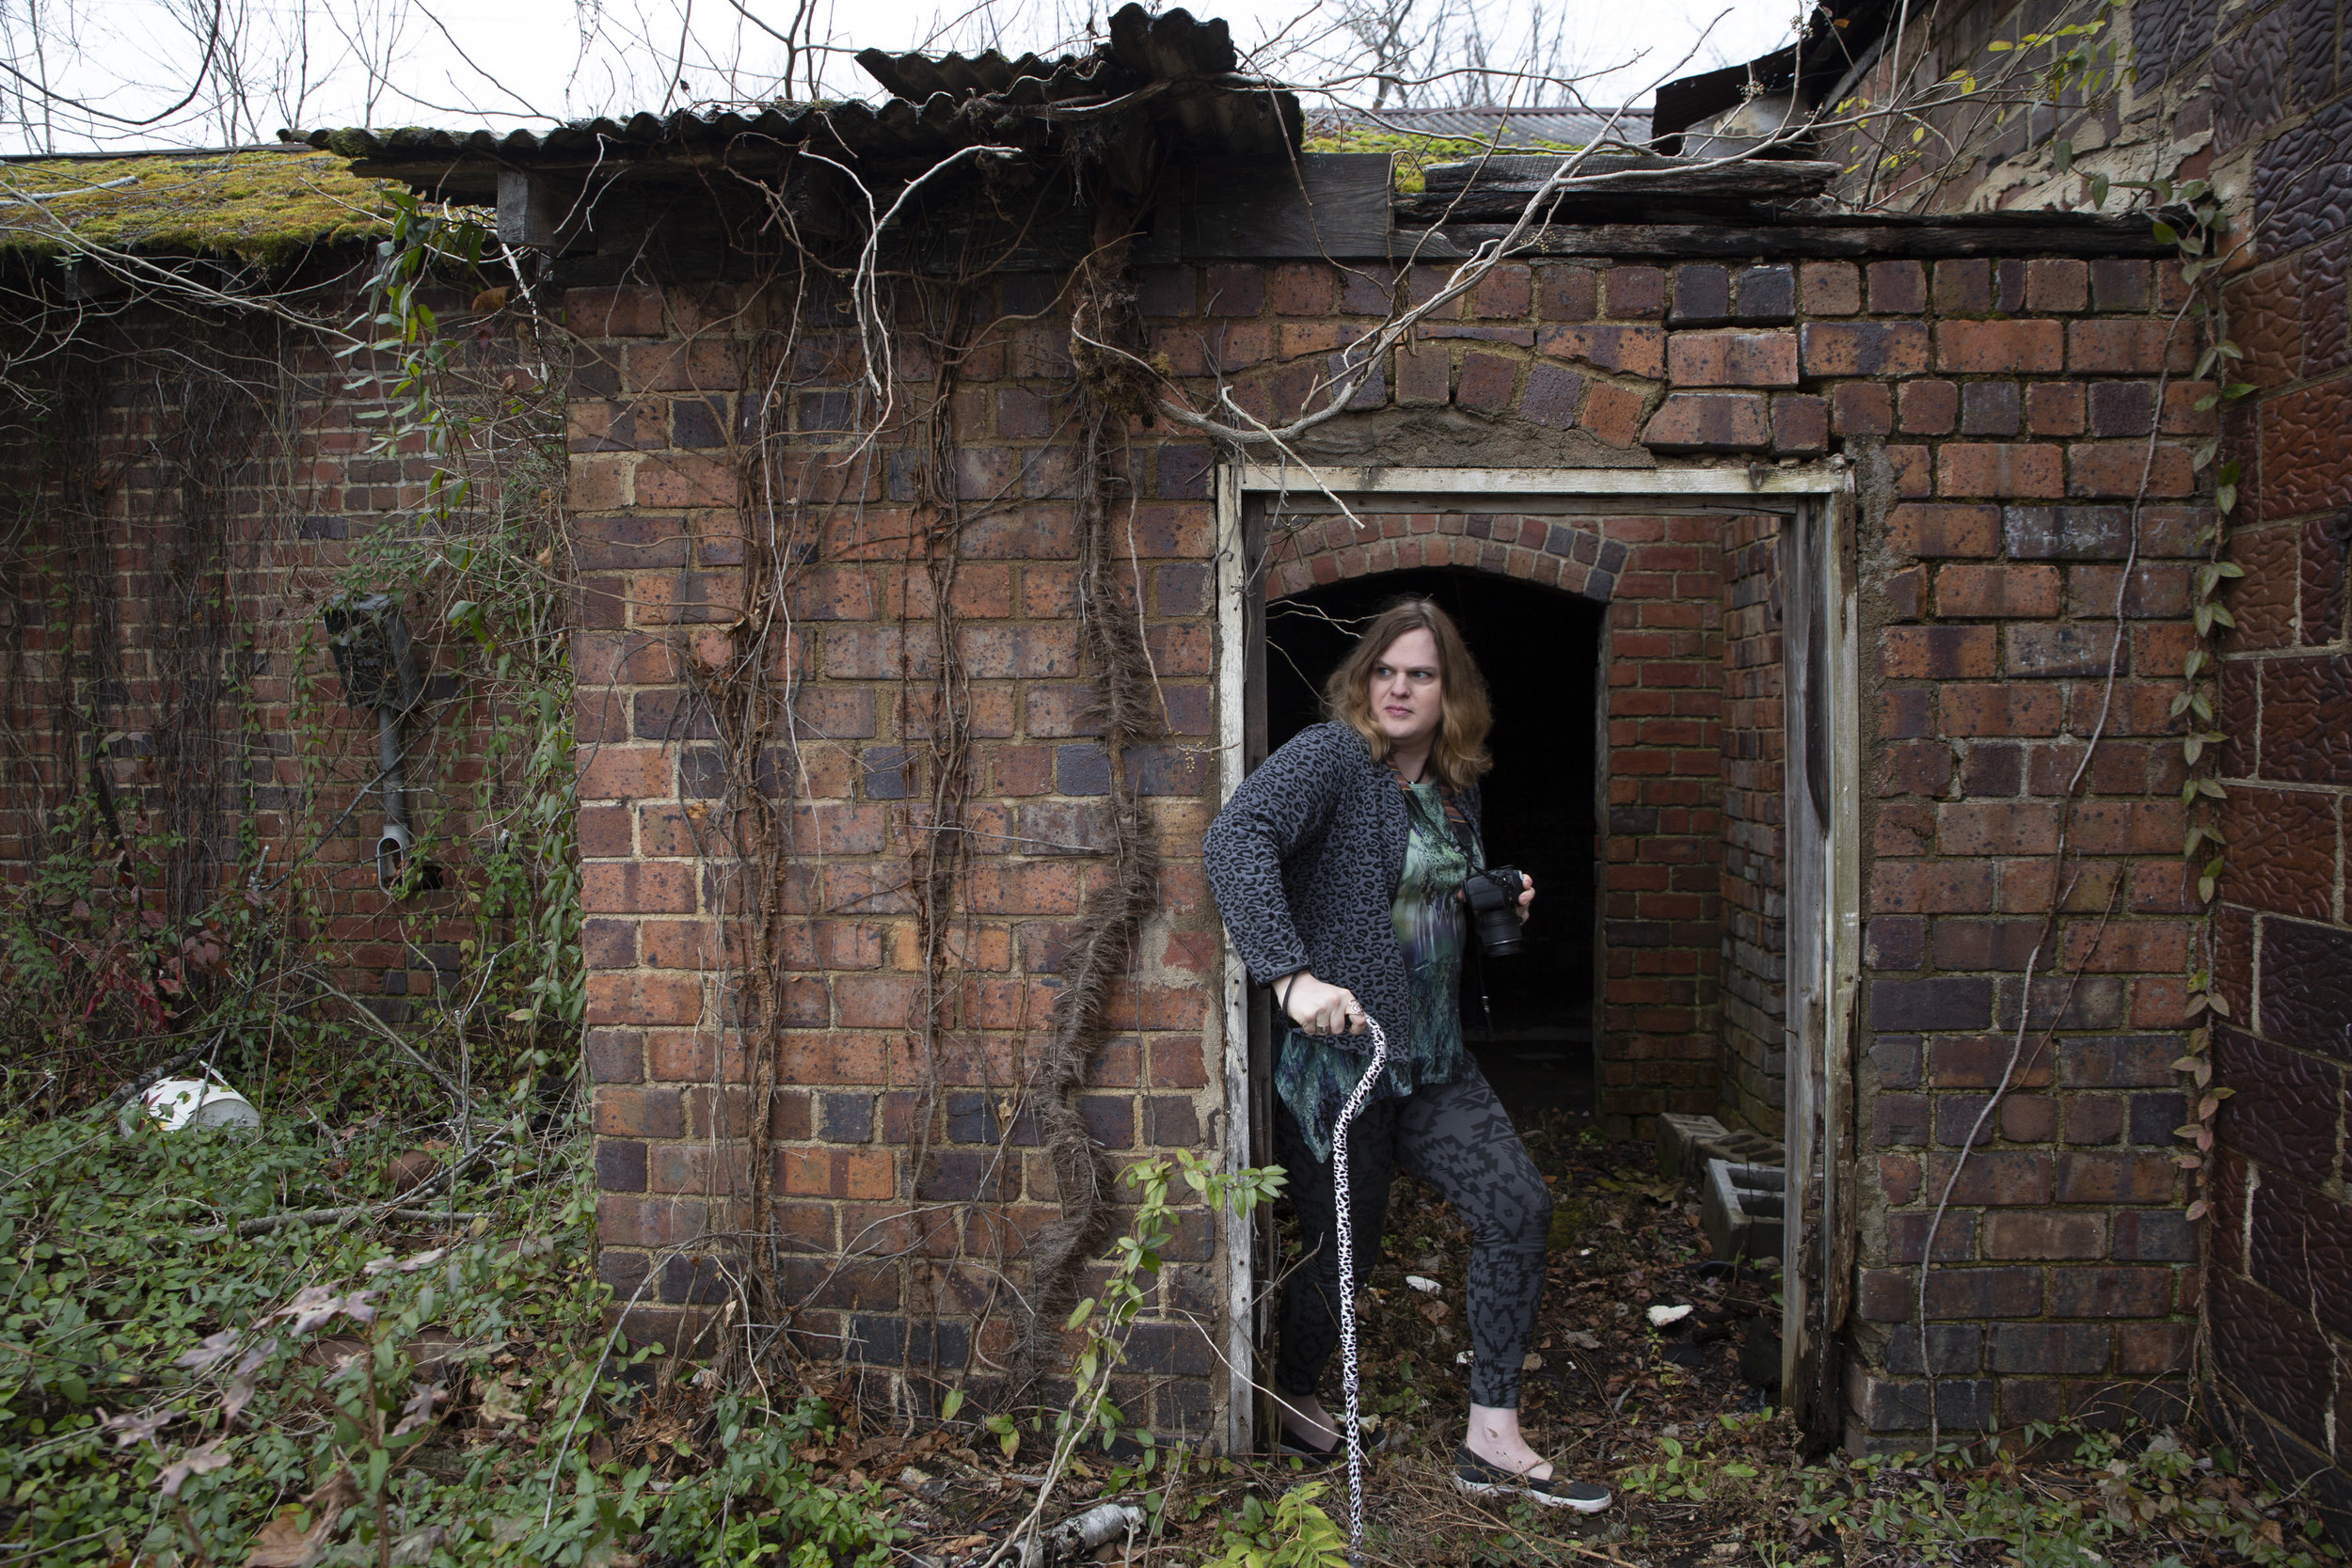 """""""What I like is broke-down places, spaces of decay, places that are abandoned by the rest of society,"""" says Smith of her favorite photography location in The Plains, Ohio. Smith is an artist and transgender activist who struggles with depression and suicidal ideation, as well as severe pack pain from a spinal injury that requires surgery."""